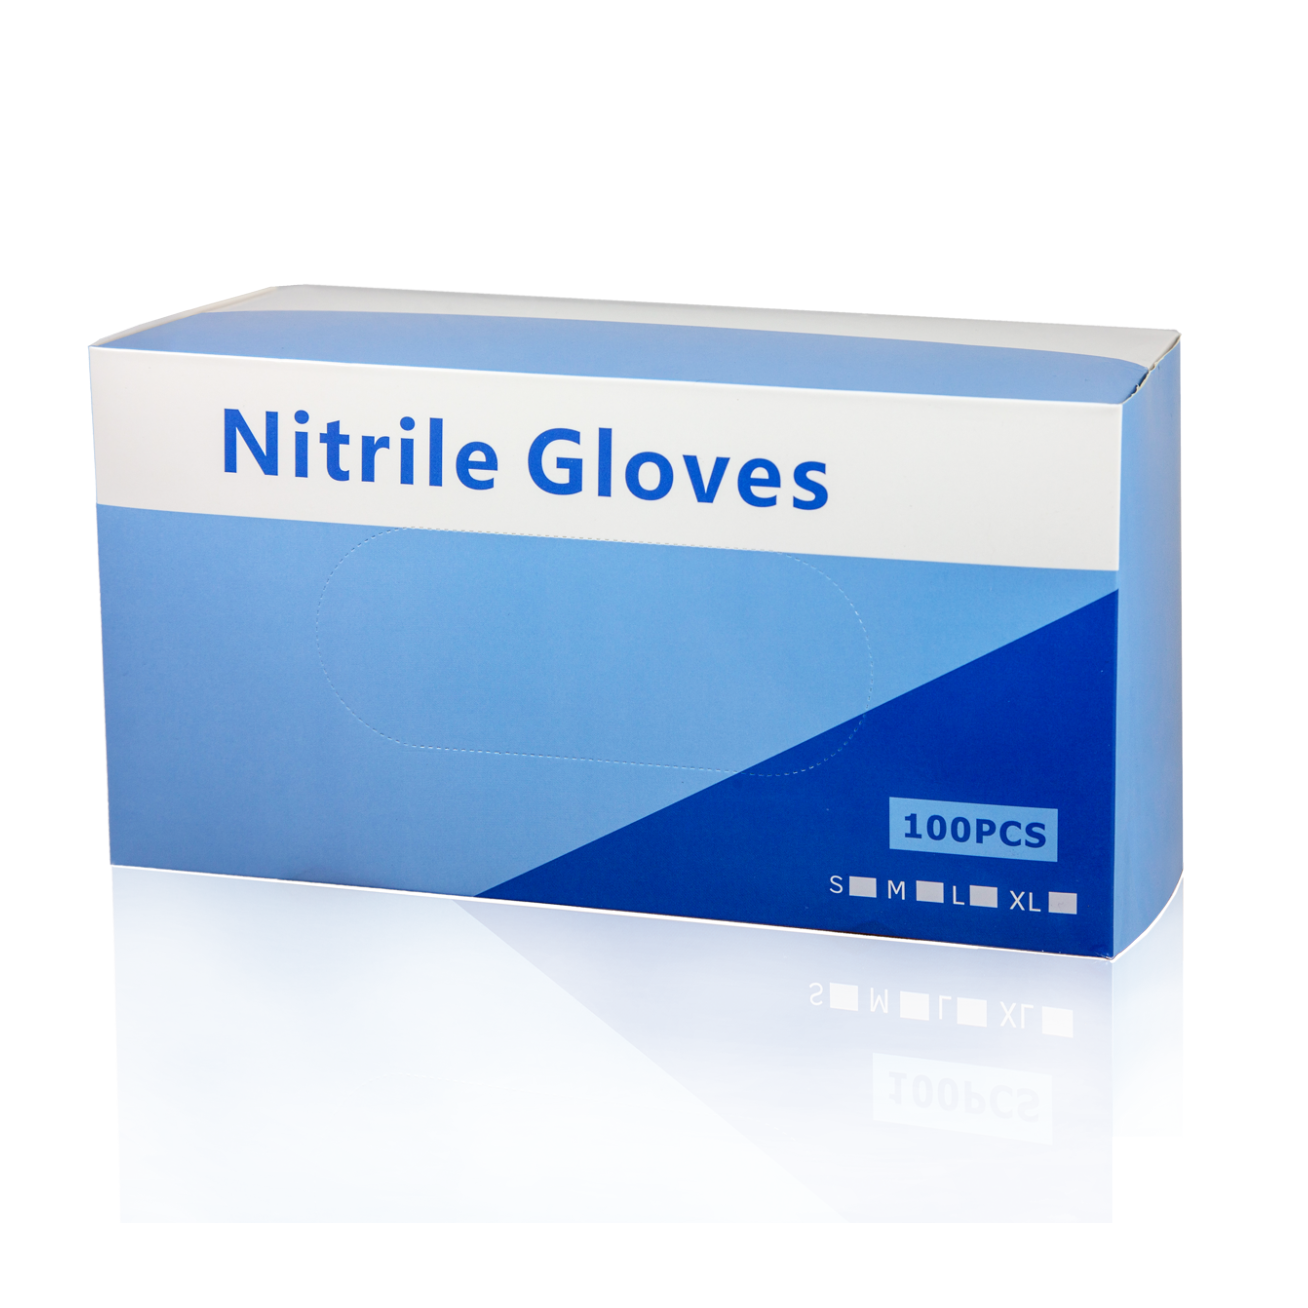 No Brand non-Medical Nitrile Gloves - Pack of 100